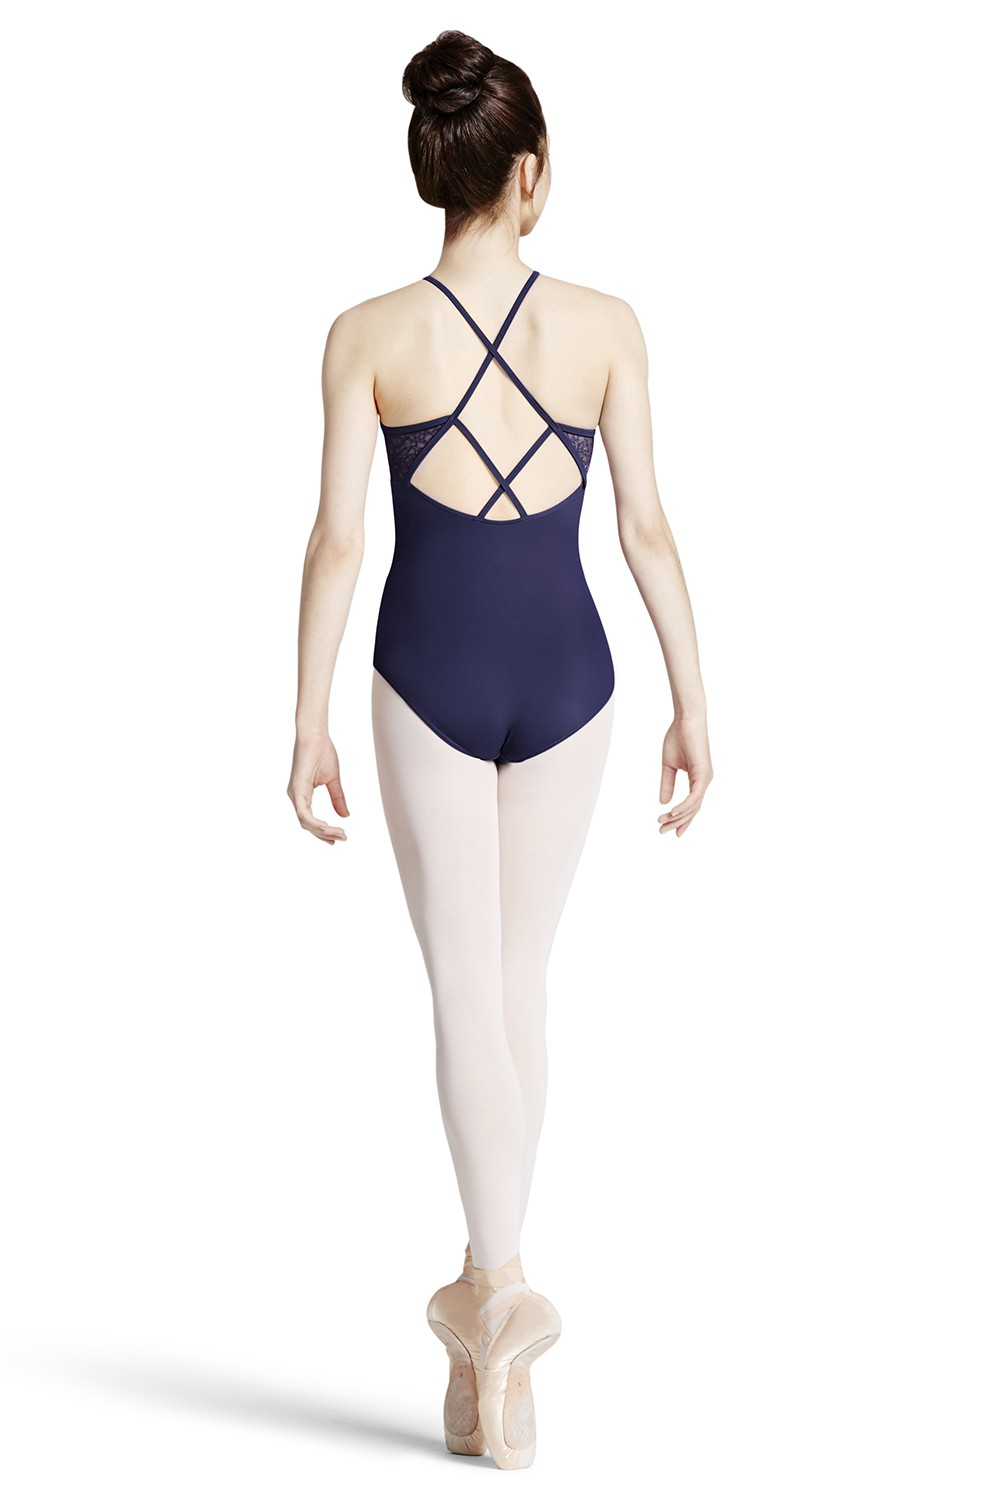 X-back Camisole Leotard Women's Dance Leotards